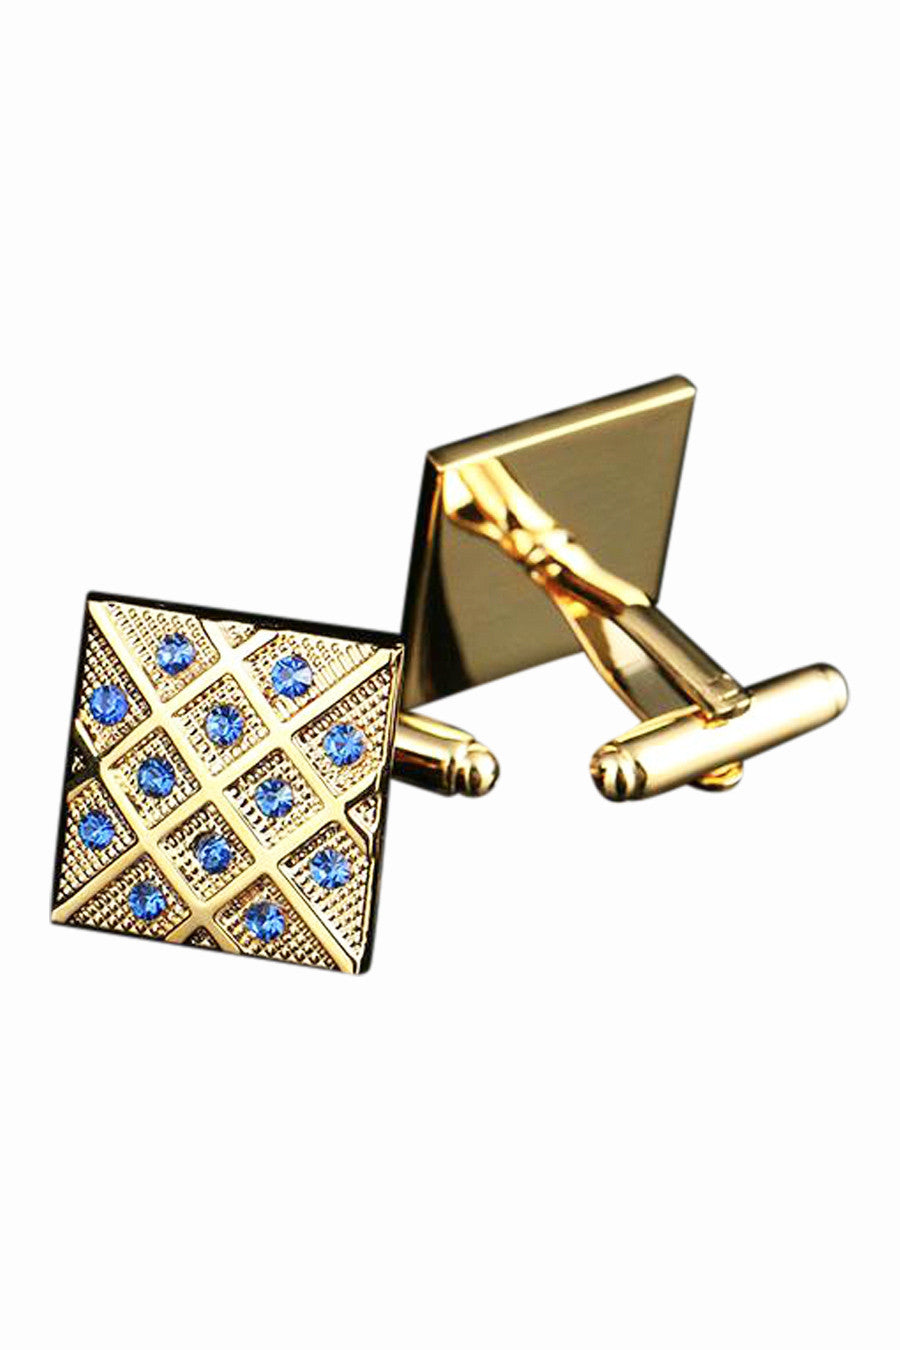 Square Mosaic Blue Crystal Cufflinks